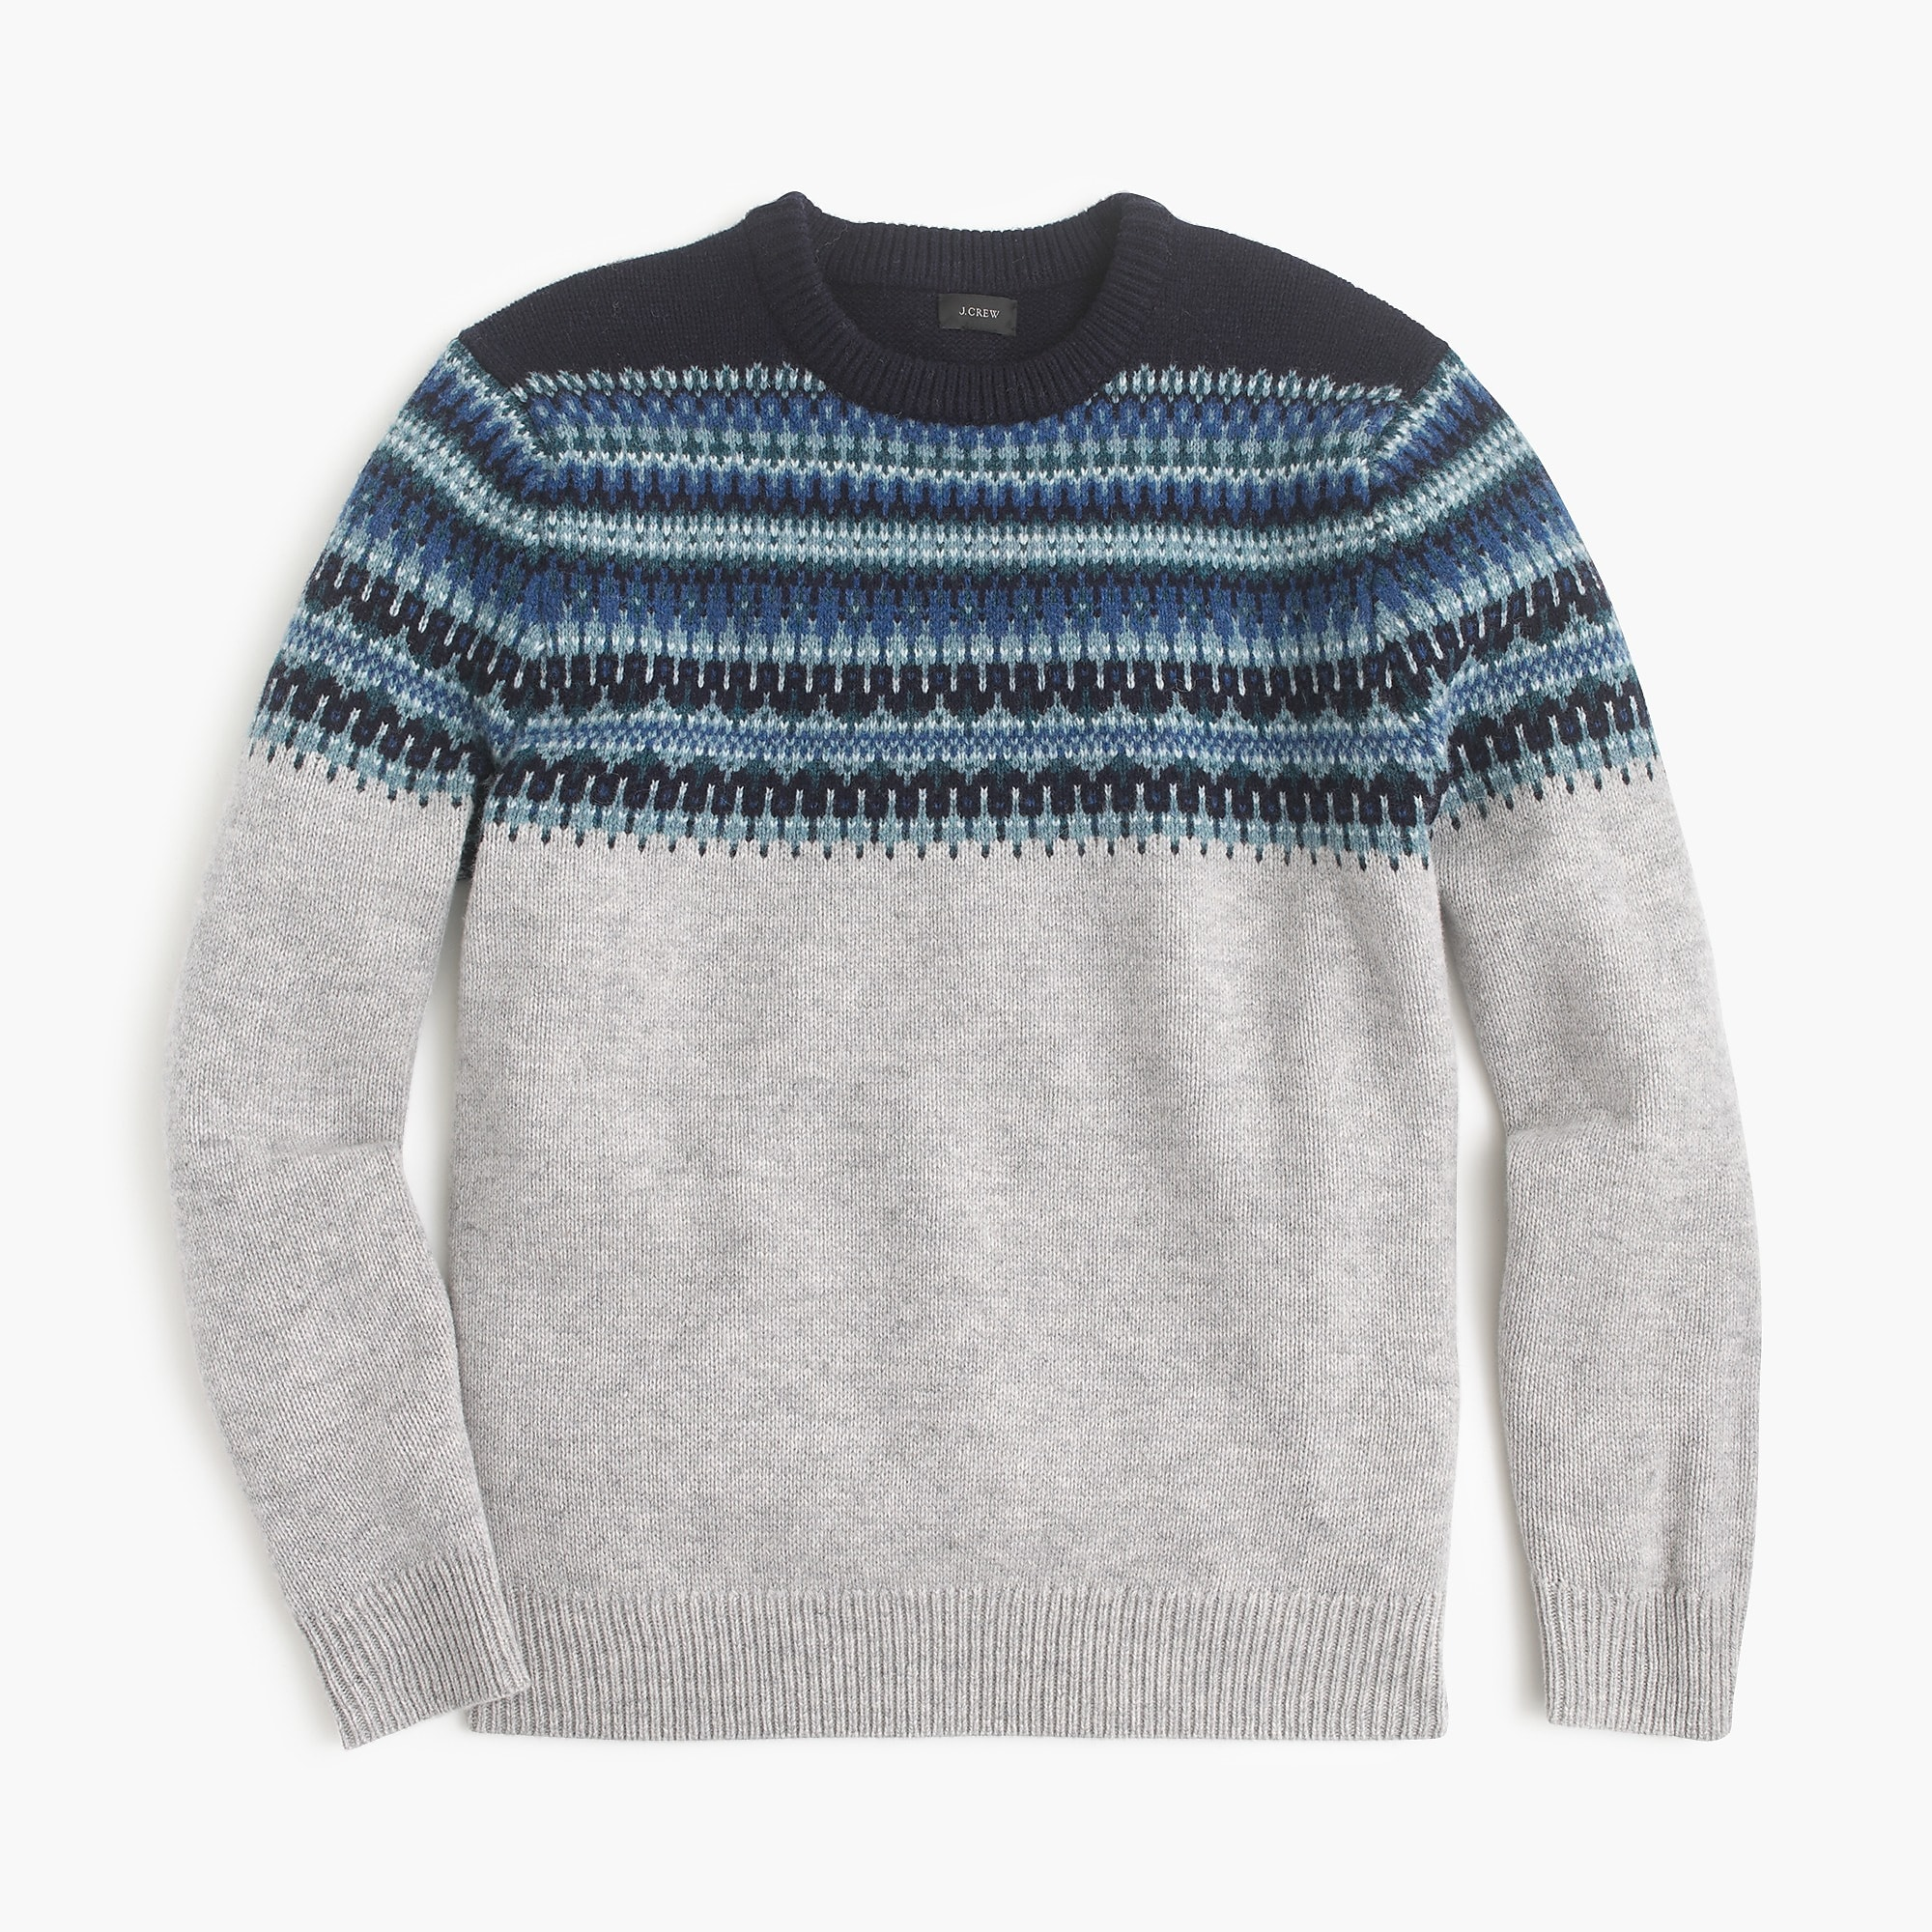 Lambswool Fair Isle sweater in navy : | J.Crew